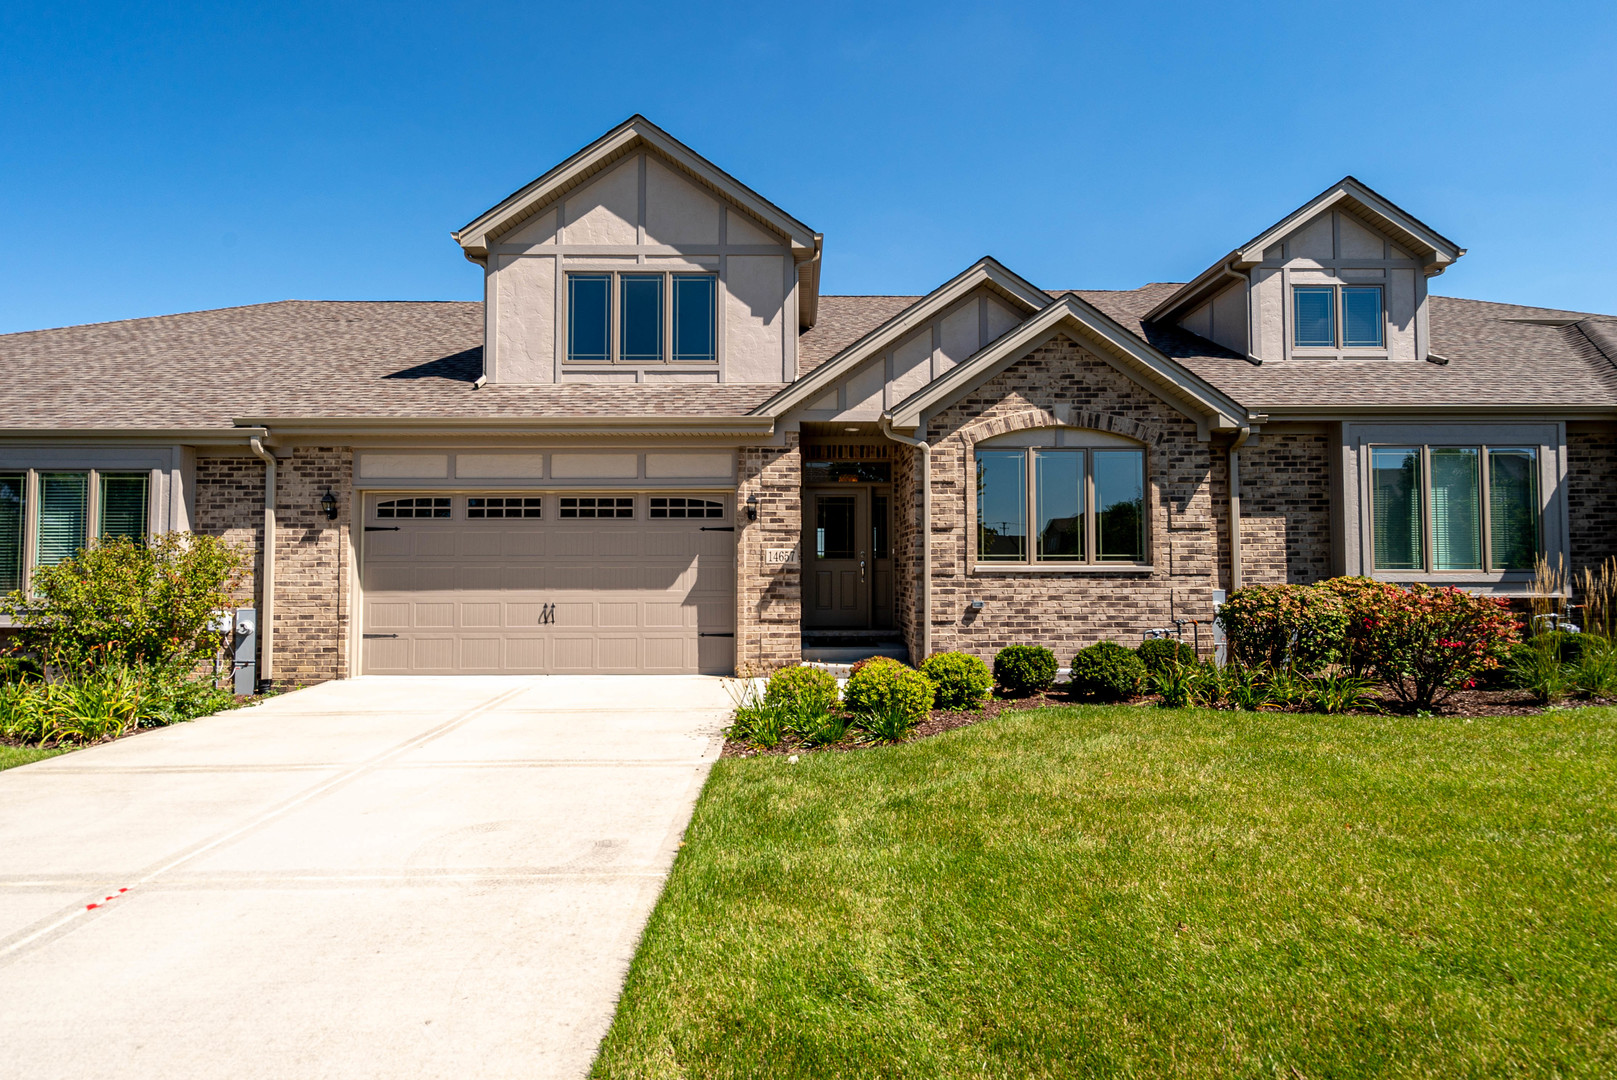 14657 Clover Lane, Homer Glen, Illinois